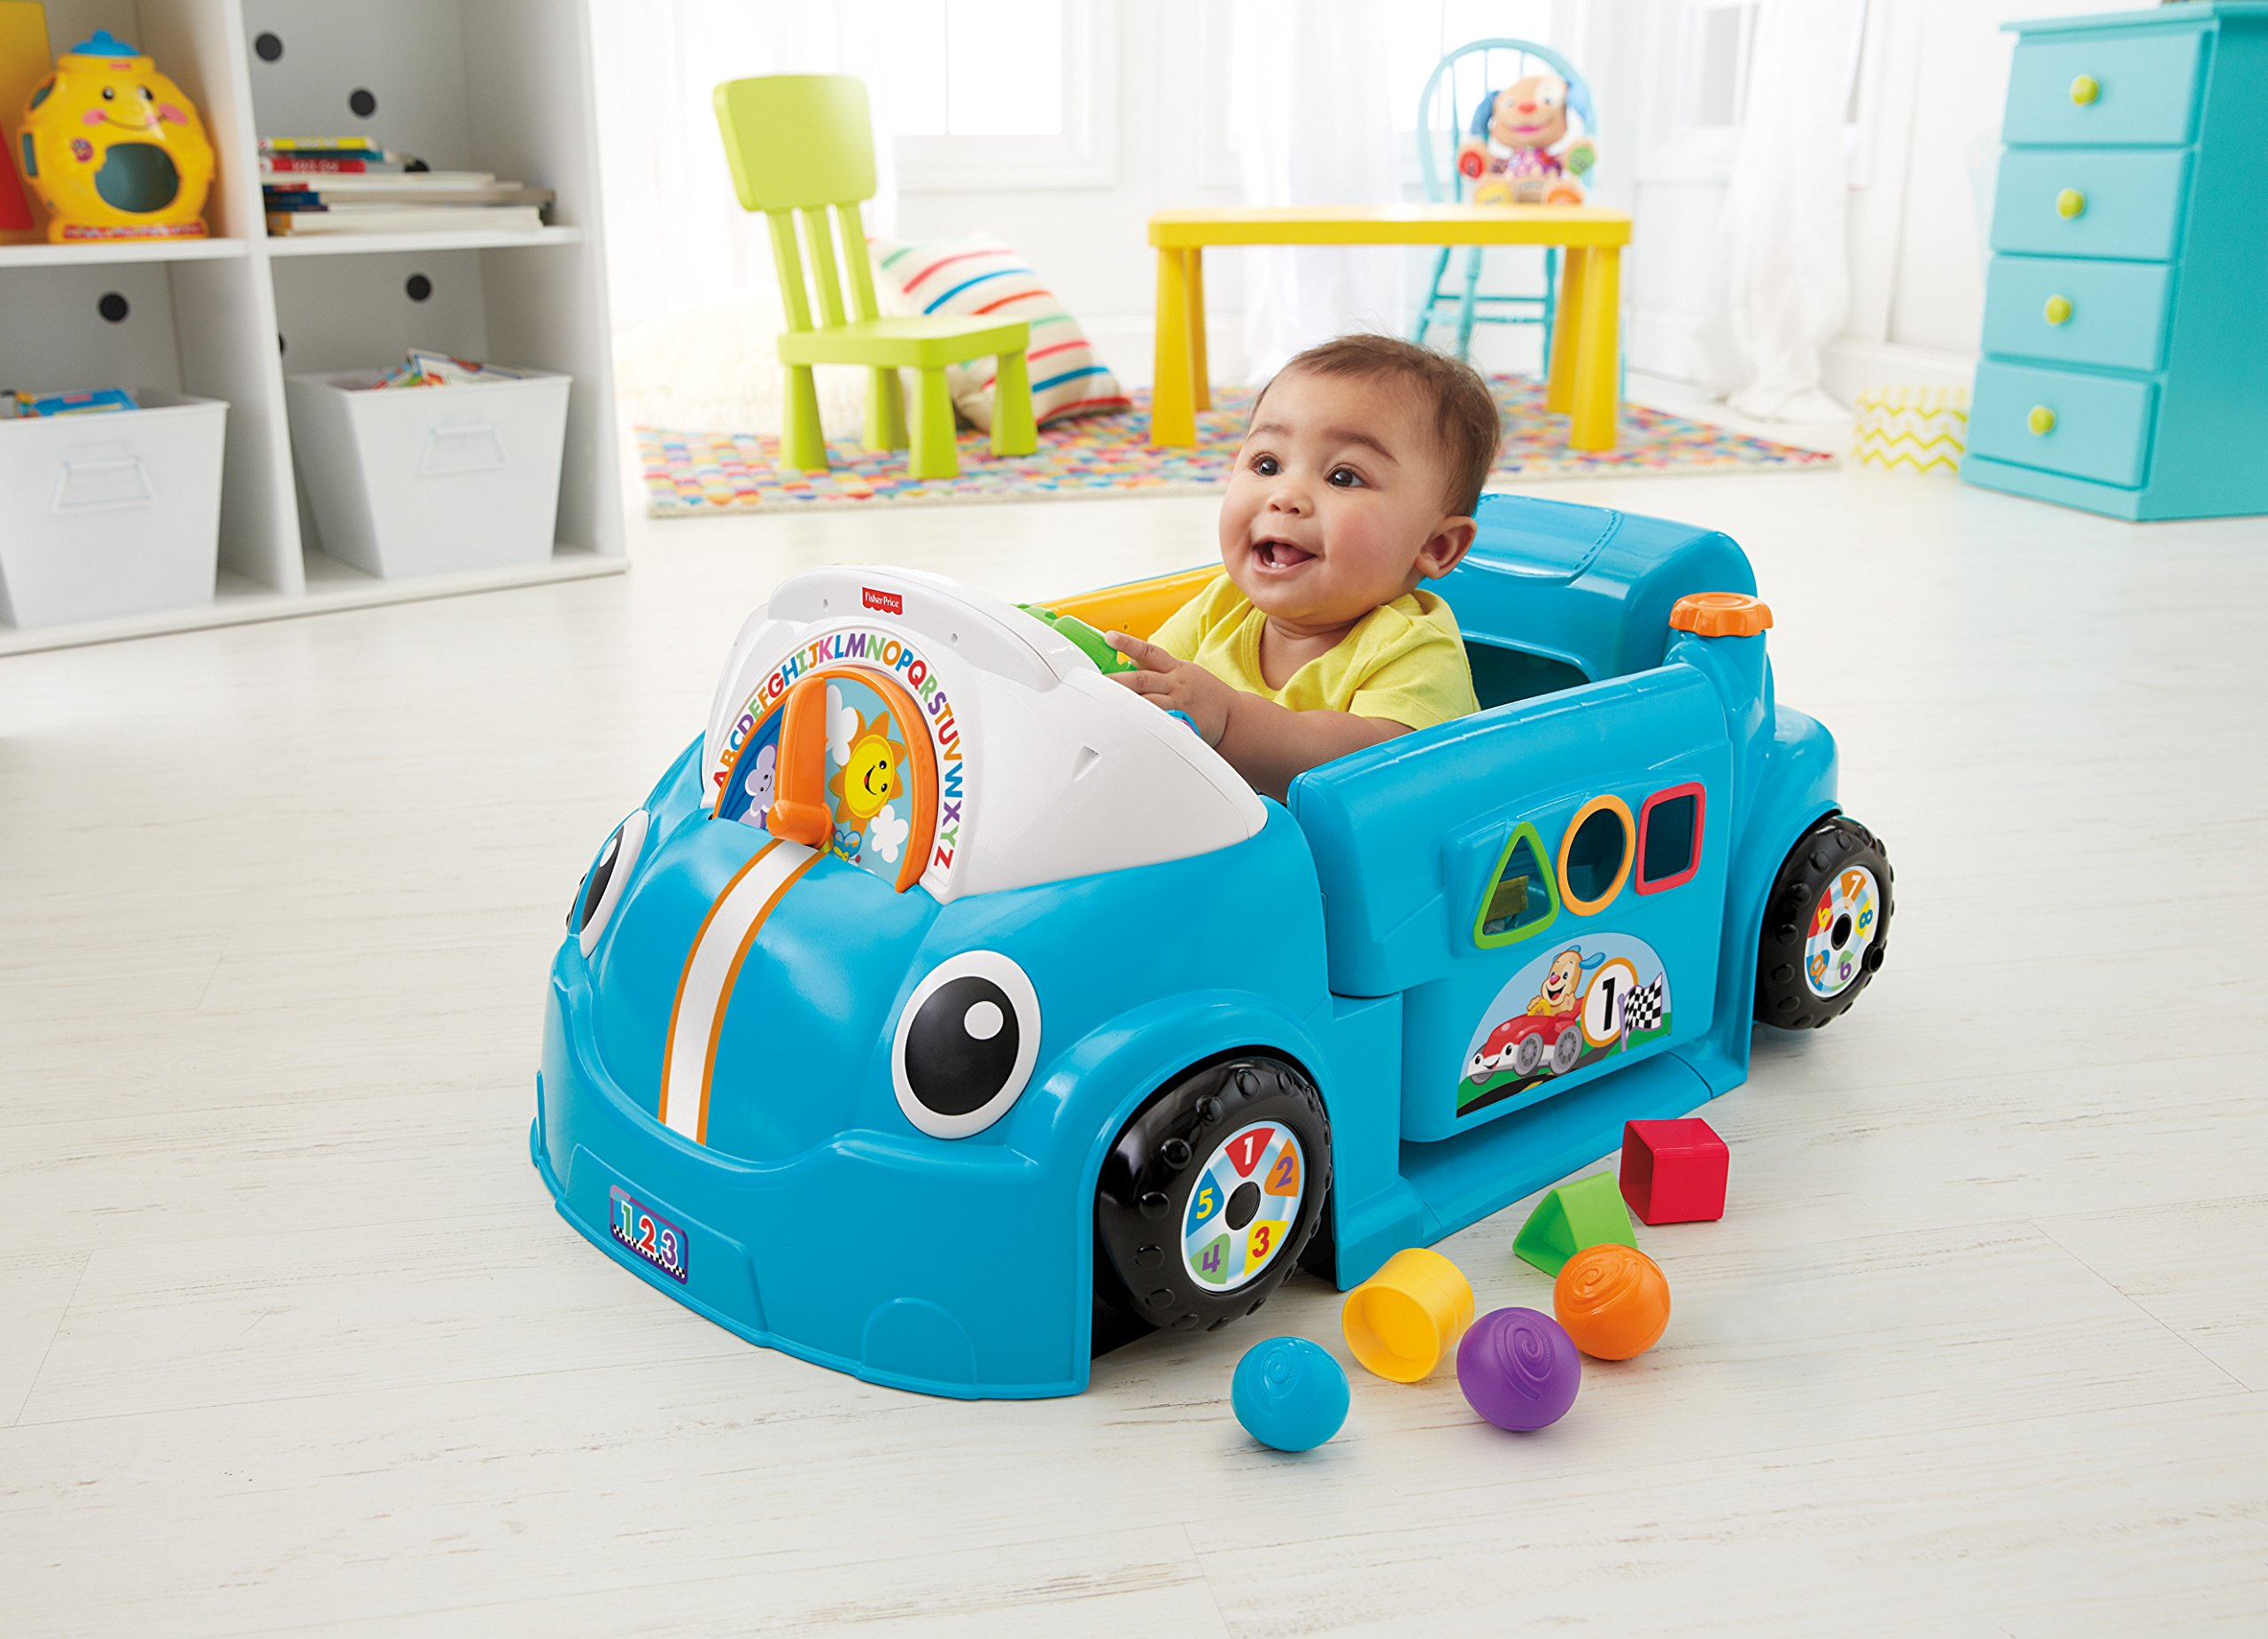 Fisher-Price Laugh & Learn Smart Stages Crawl Around Car, Blue by Fisher-Price (Image #2)